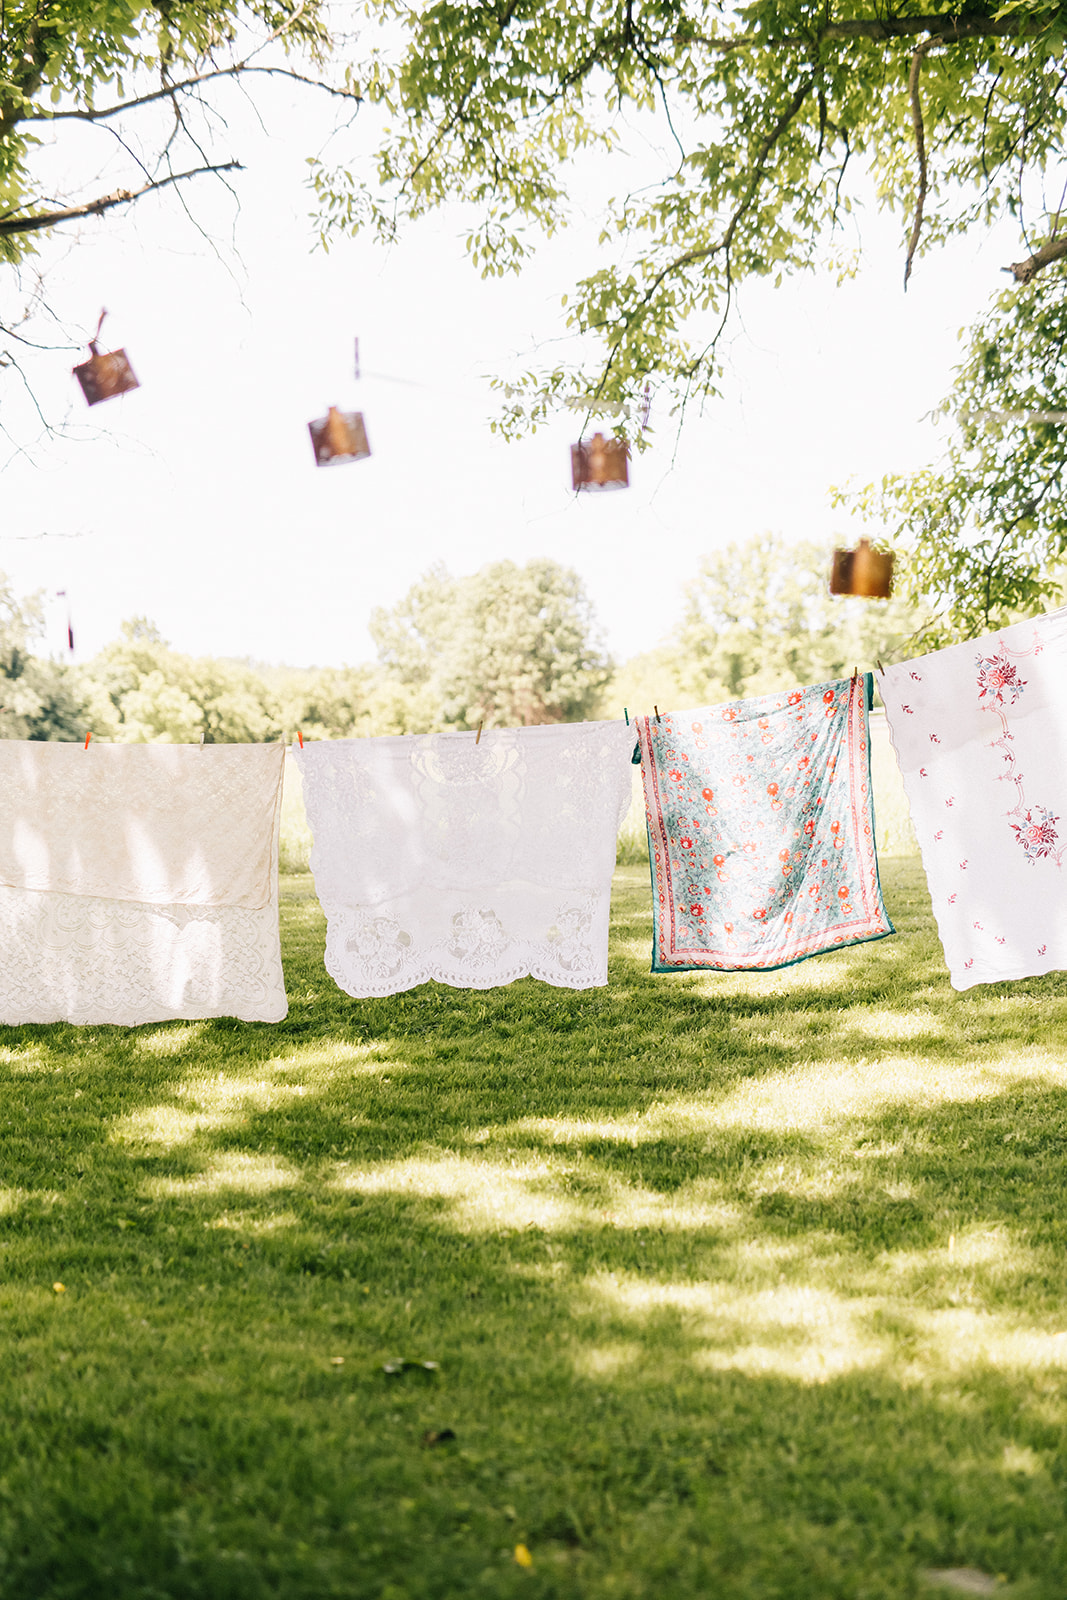 Photo of our clothesline taken by  https://www.honesttogoodnessphoto.com/